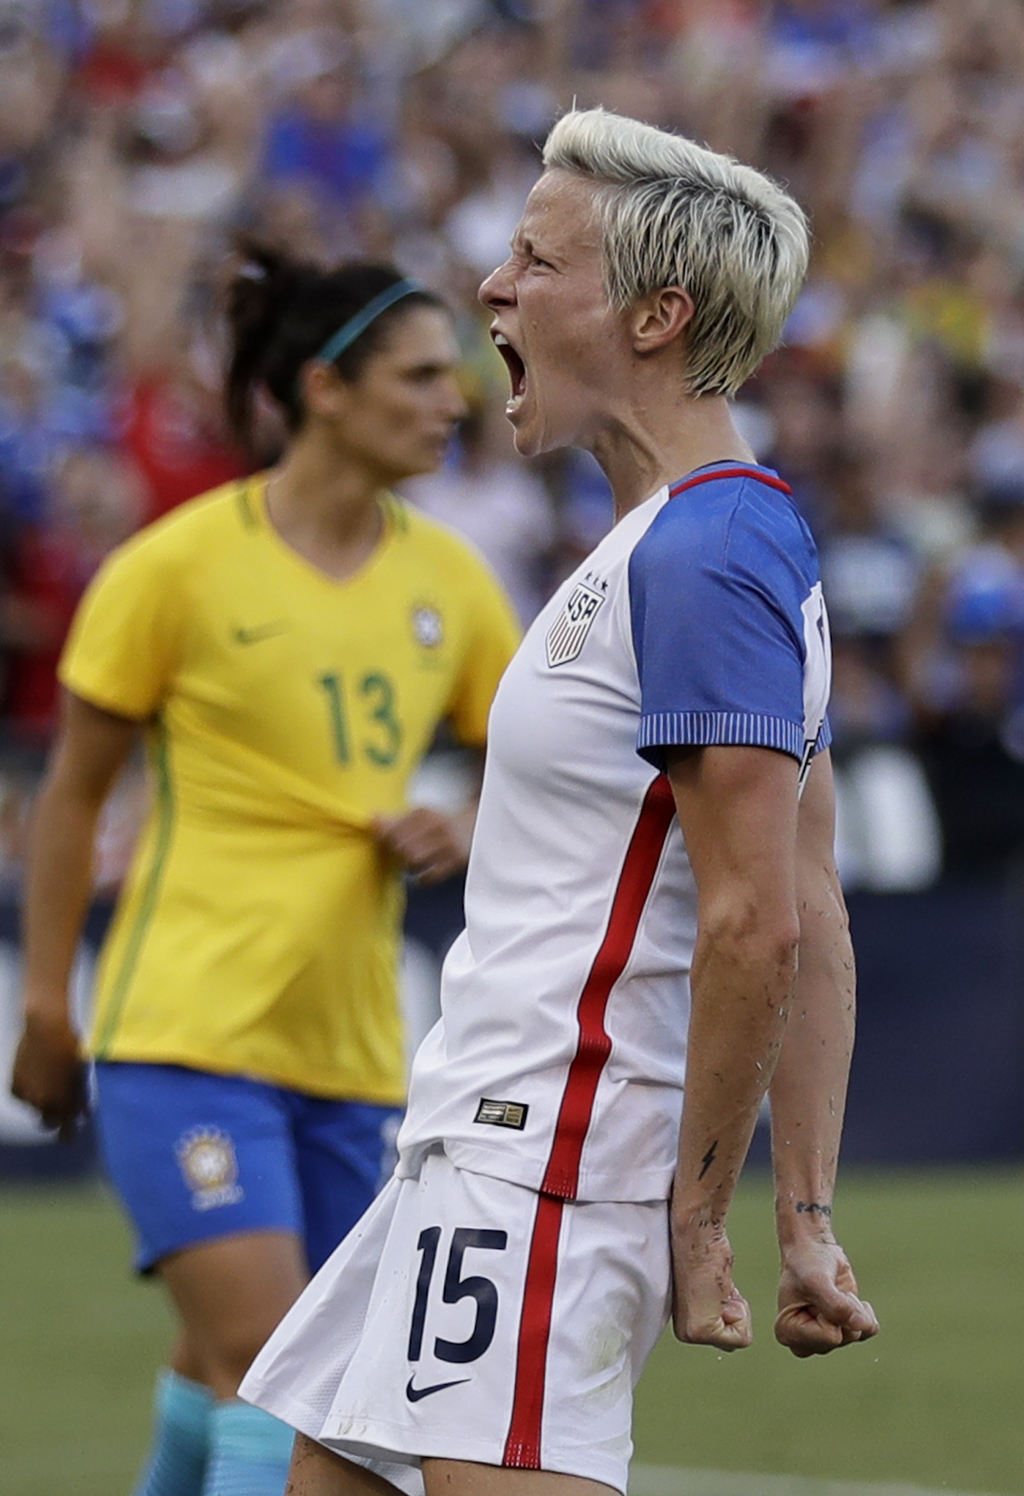 United States midfielder Megan Rapinoe, right, reacts after scoring a goal against Brazil during the second half of a Tournament of Nations women's so...